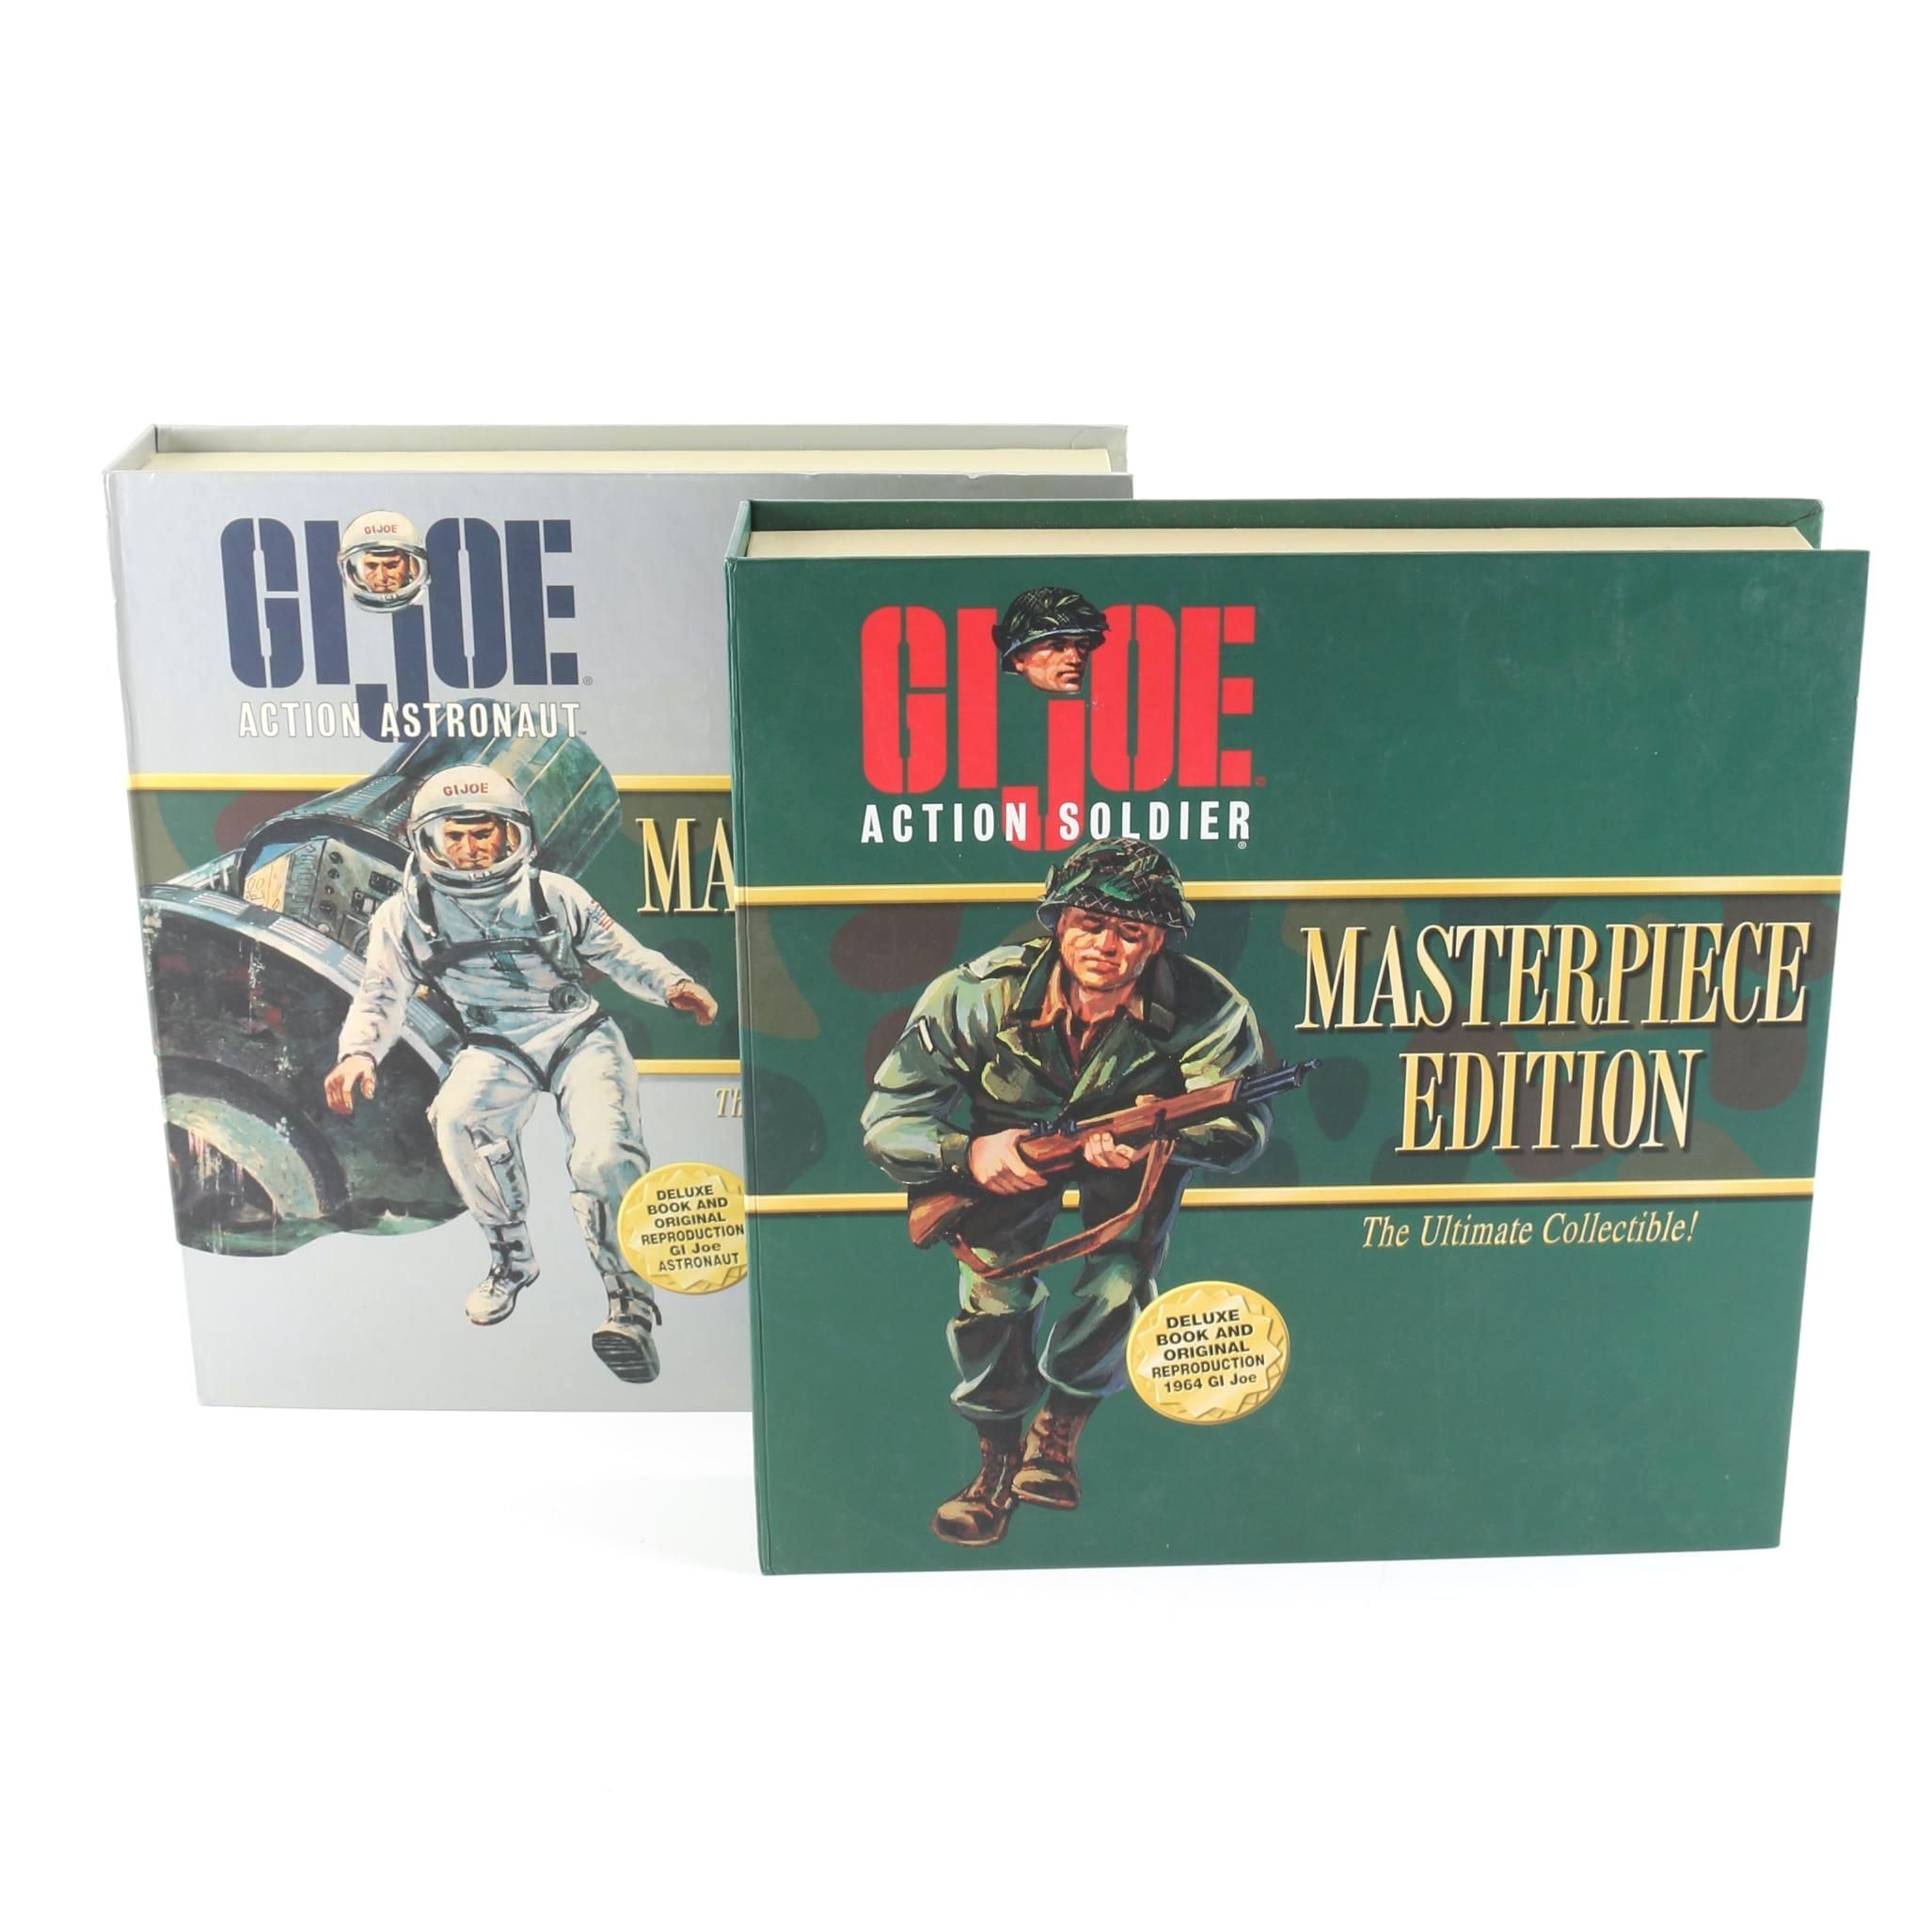 G.I. Joe Masterpiece Edition Action Soldier and Action Astronaut